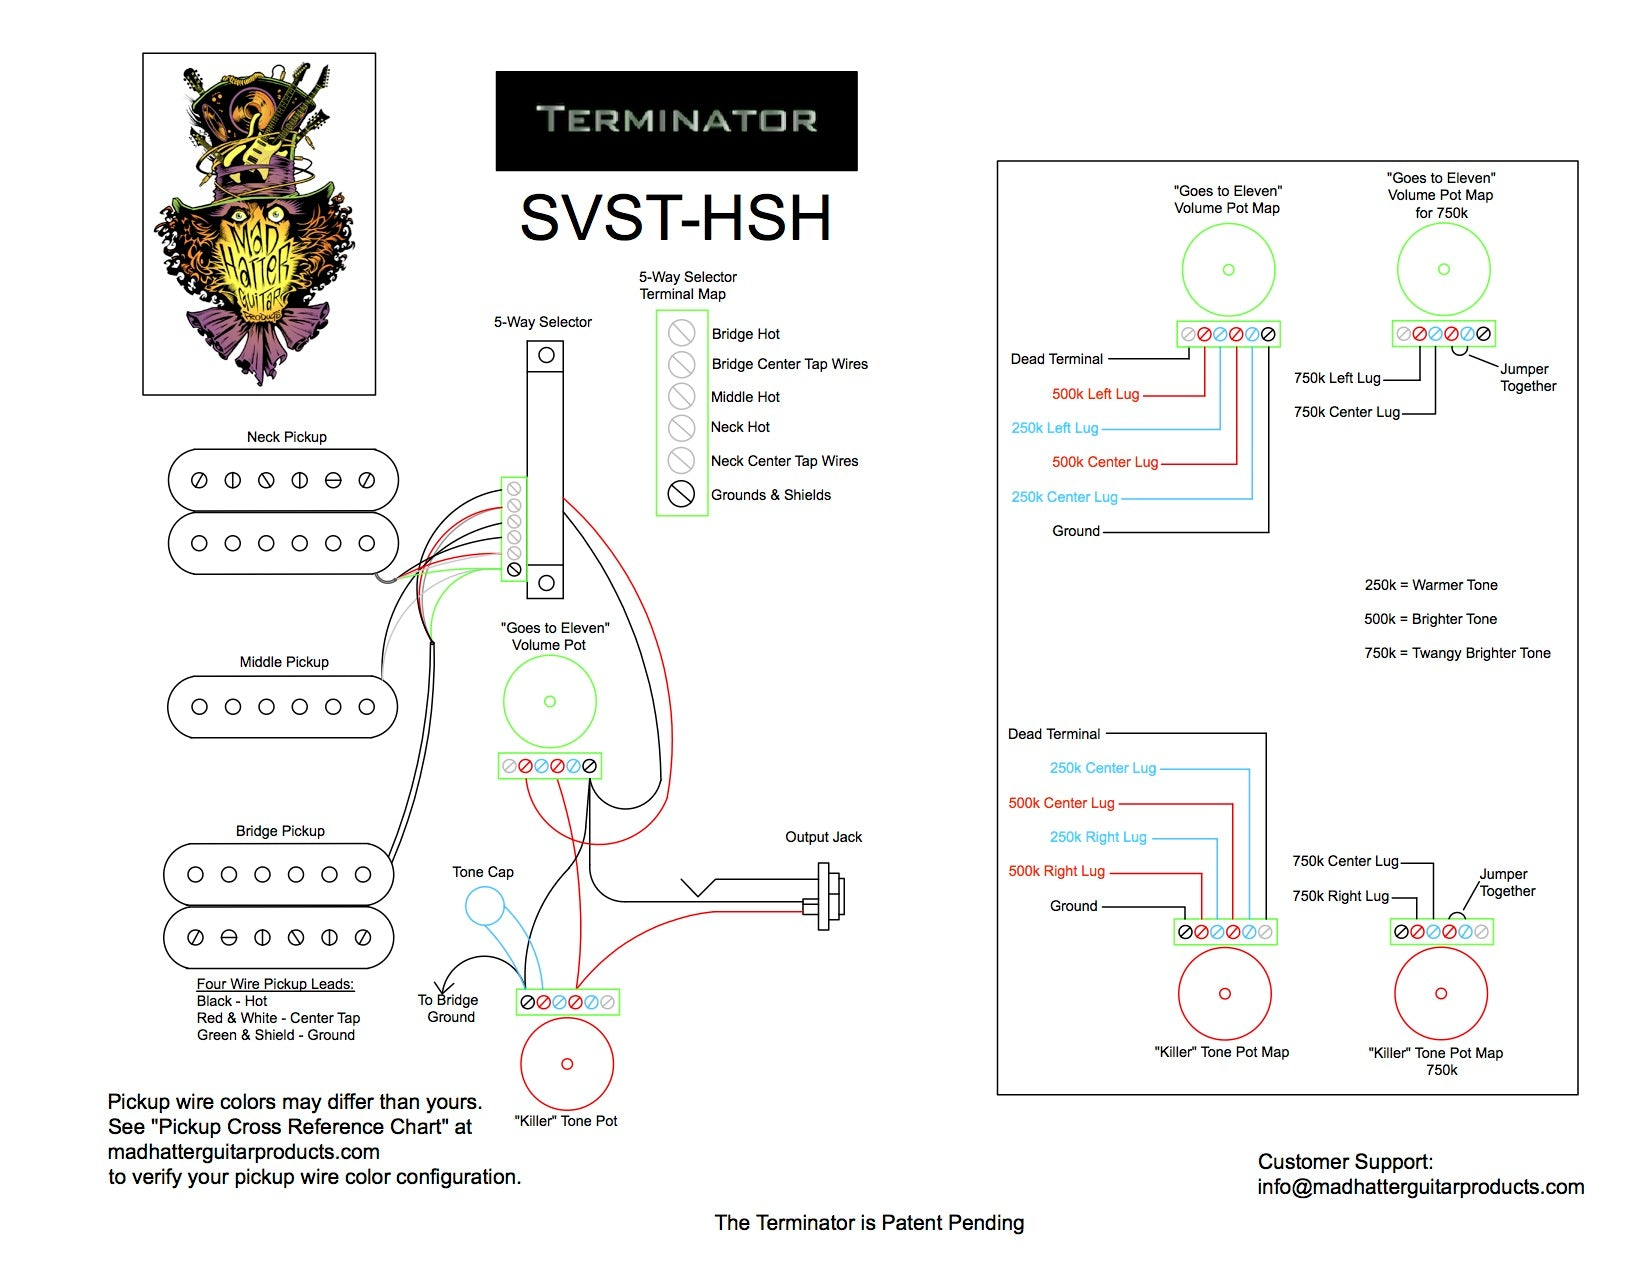 Terminator Wiring Instructions Mad Hatter Guitar Products Diagrams No Tone Note Previous To January 2018 All 5s Selector Switches Had A Green And White Wire That Are Longer Used If Your System Has These Wires Please Cut